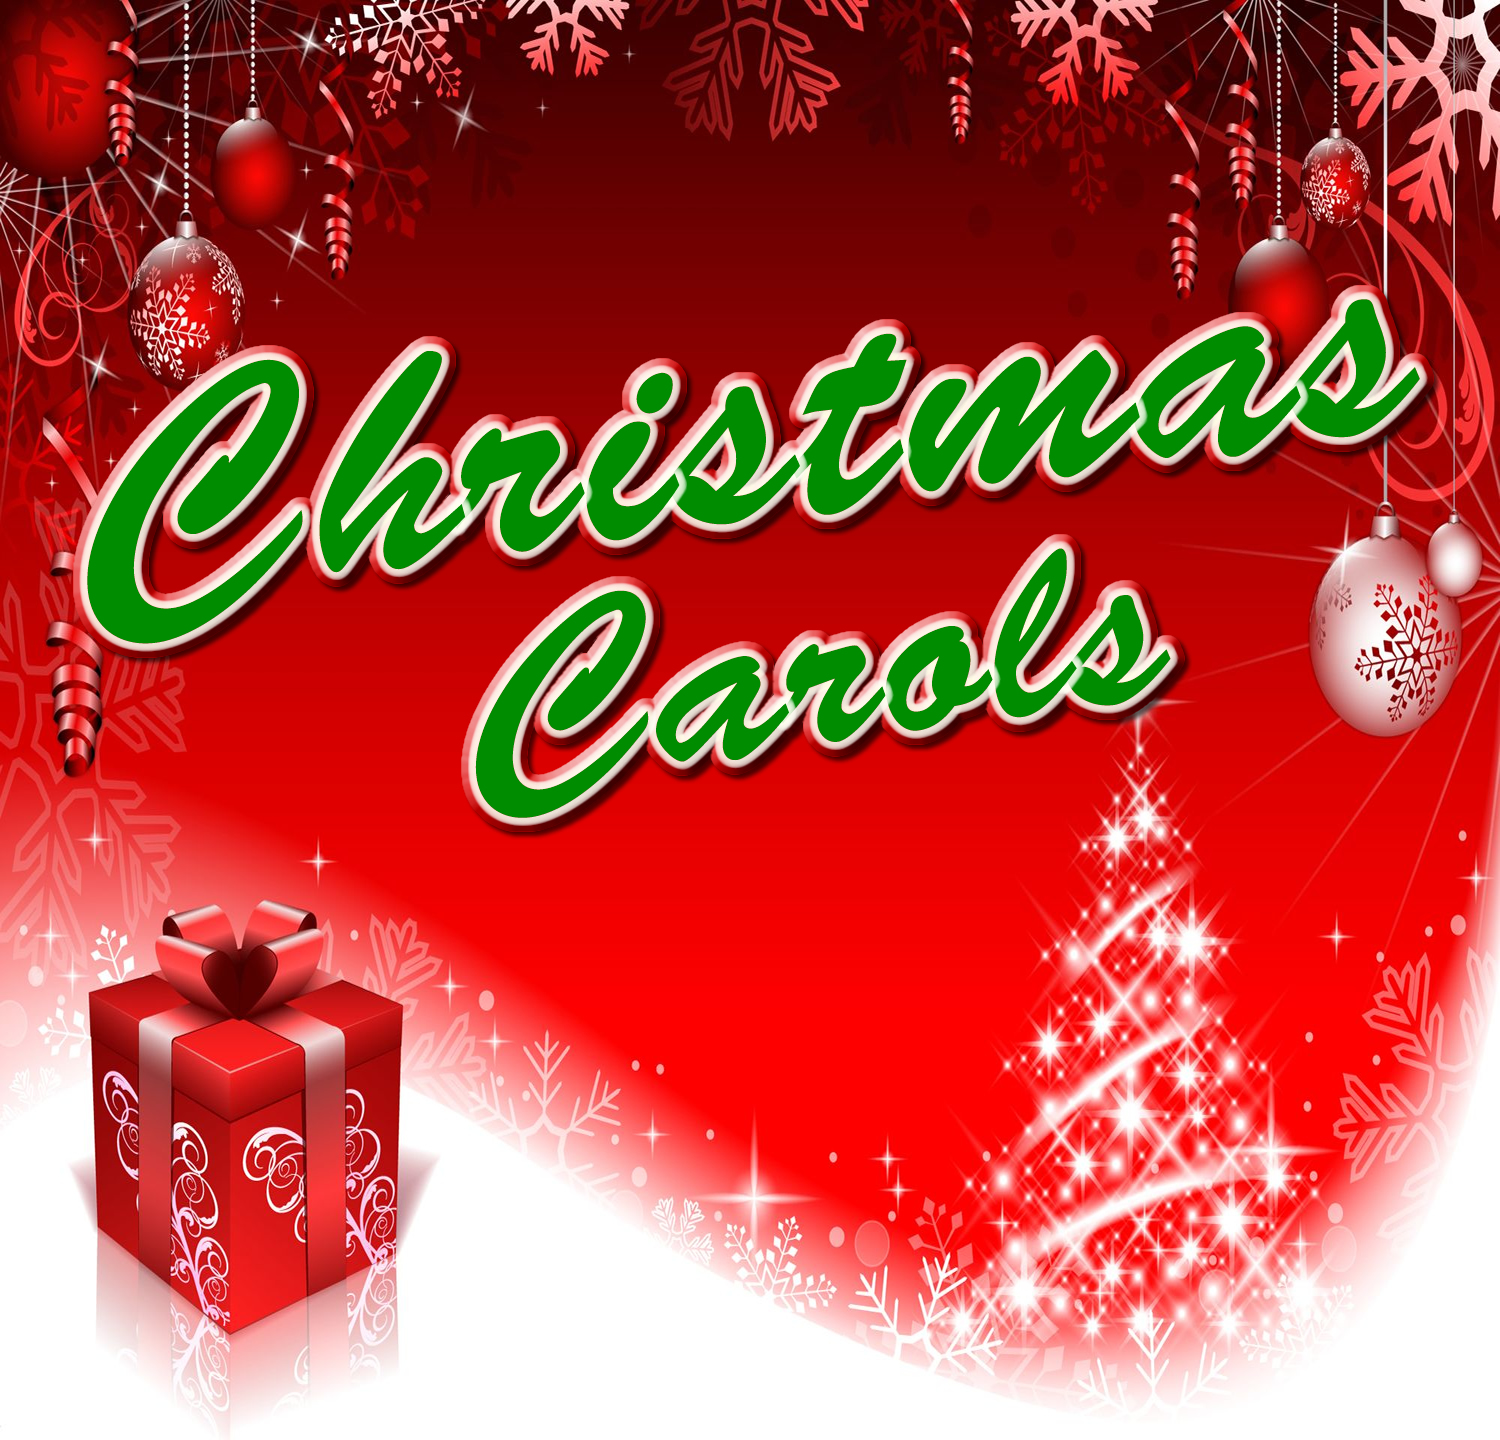 Vocal-Star Traditional Christmas Songs & Carols Download Album